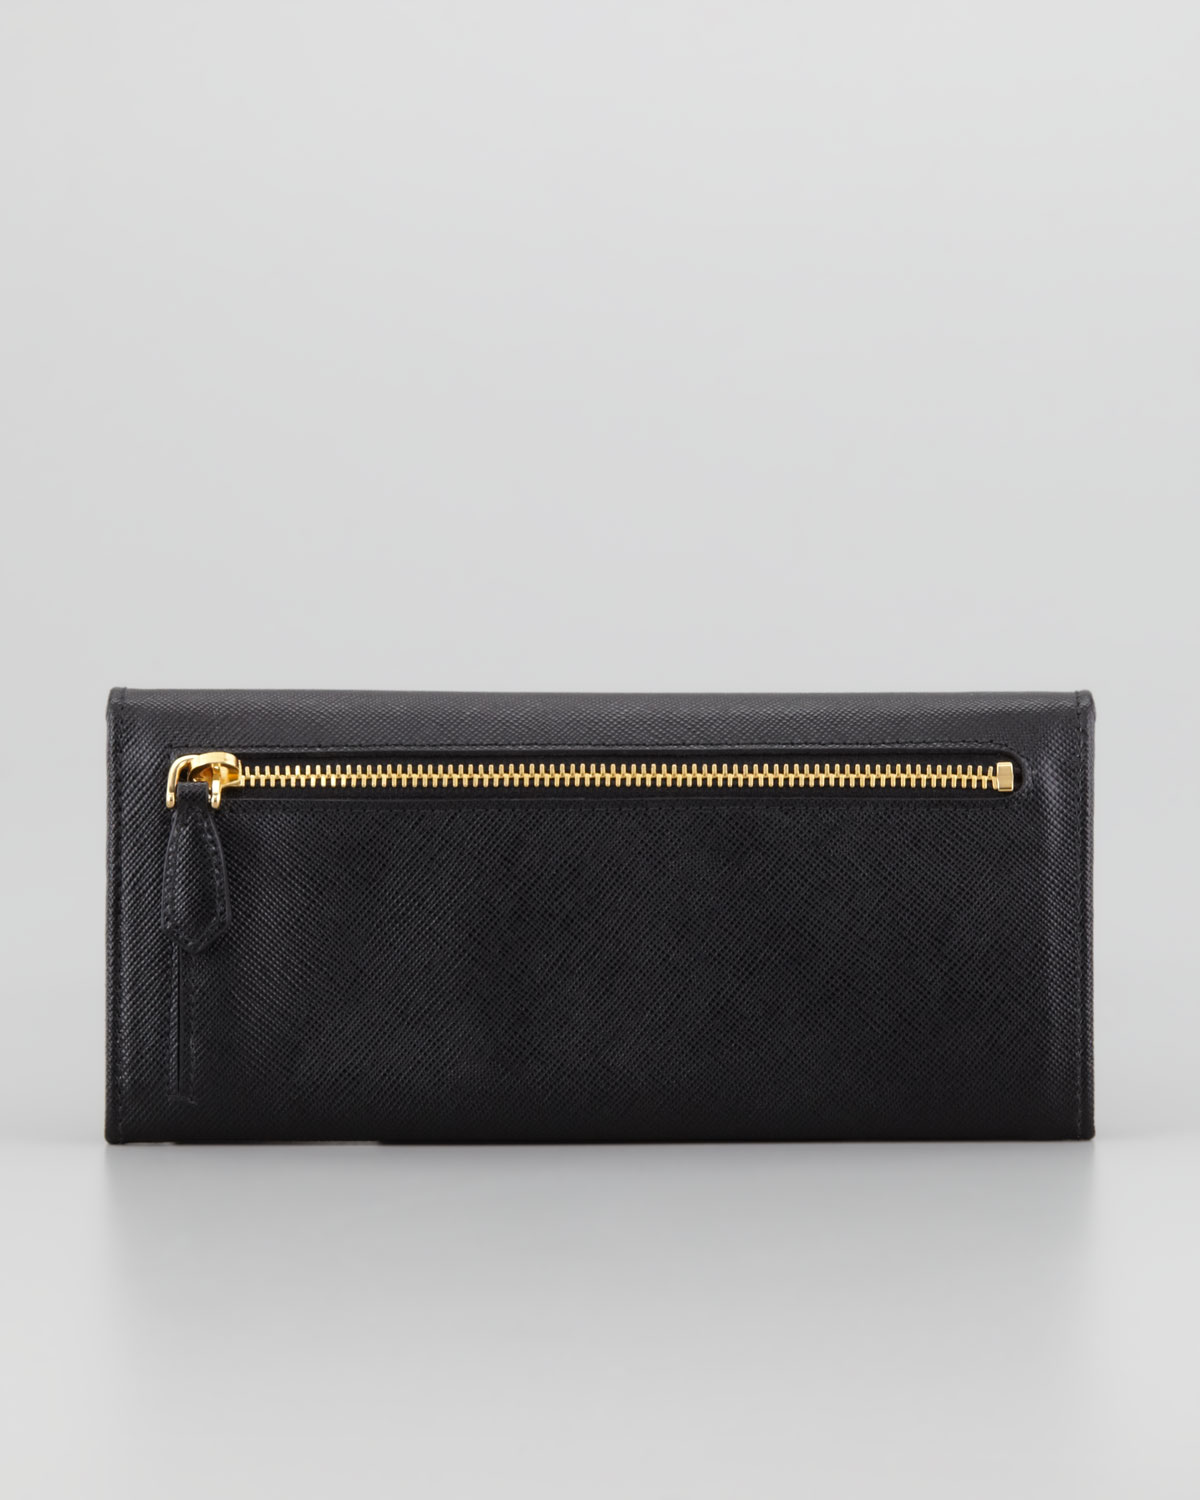 c7fc83636c0681 Prada Saffiano Flap Wallet Black | Stanford Center for Opportunity ...